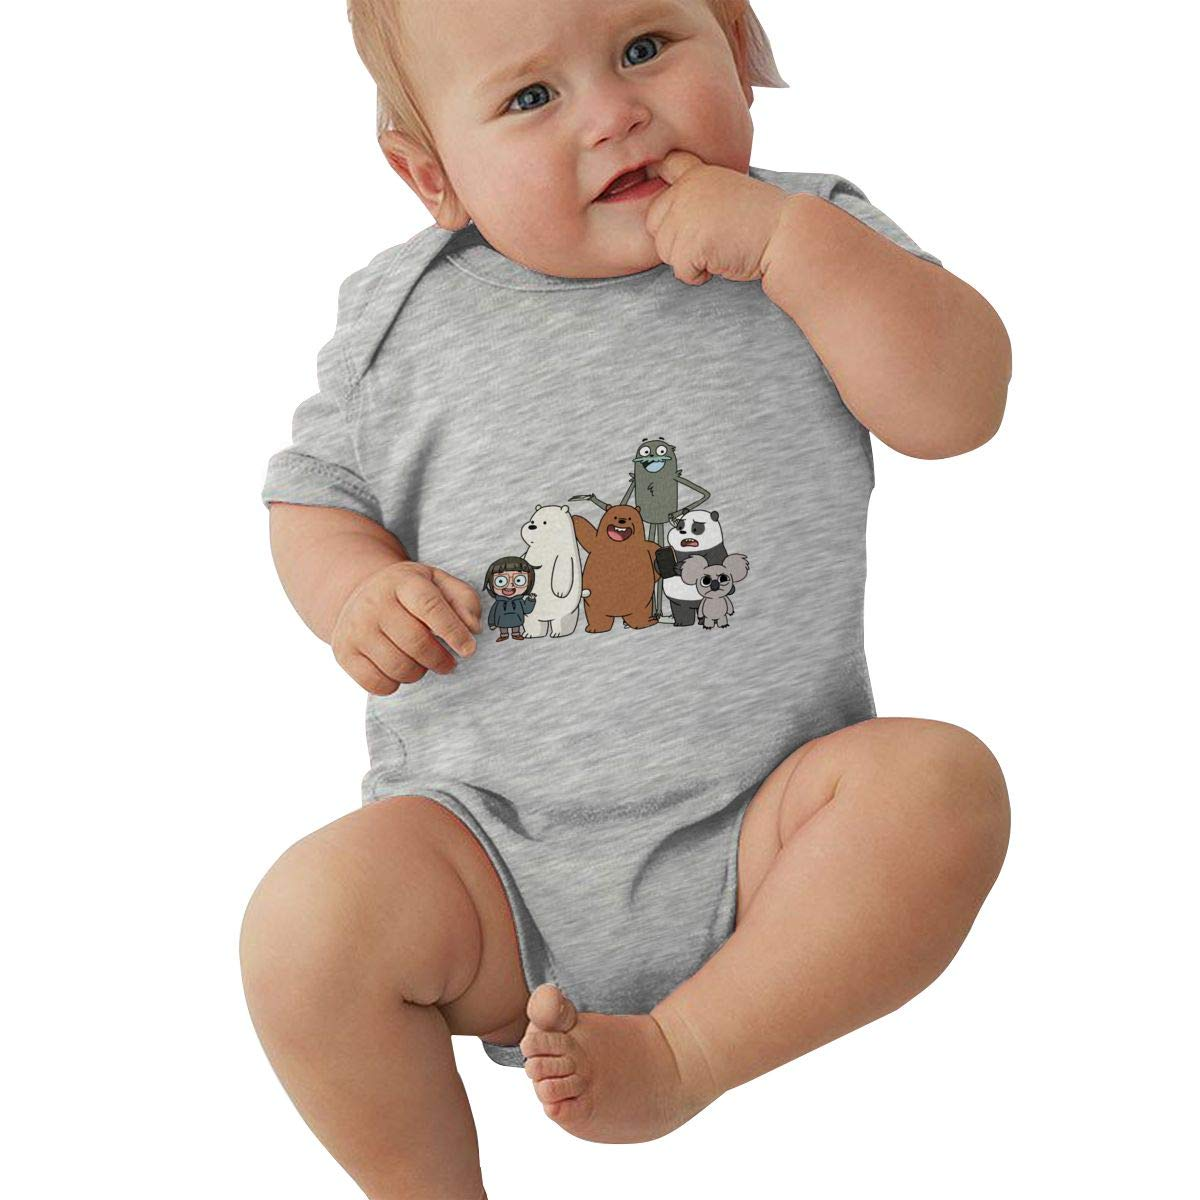 LuYiDa Baby Crew Neck Short Sleeve Climbing Clothes We Bare Bears Funny Crawling Suit Black